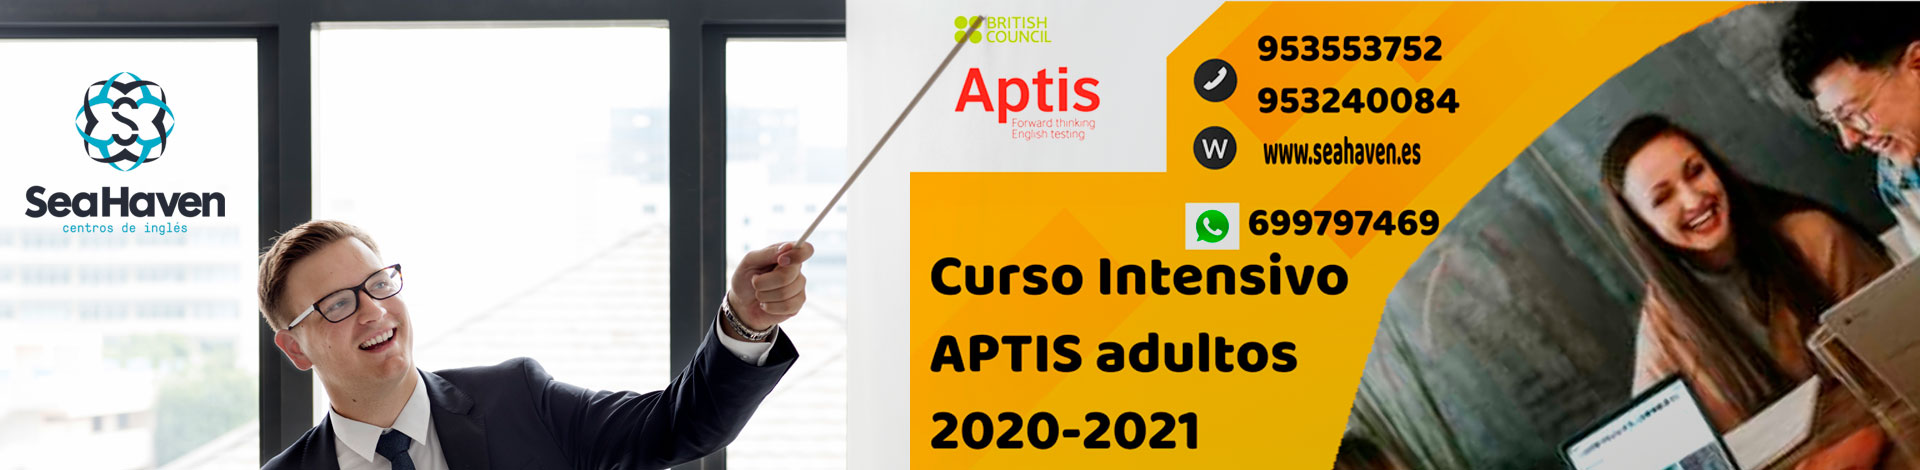 Slider Curso Aptis 20 21